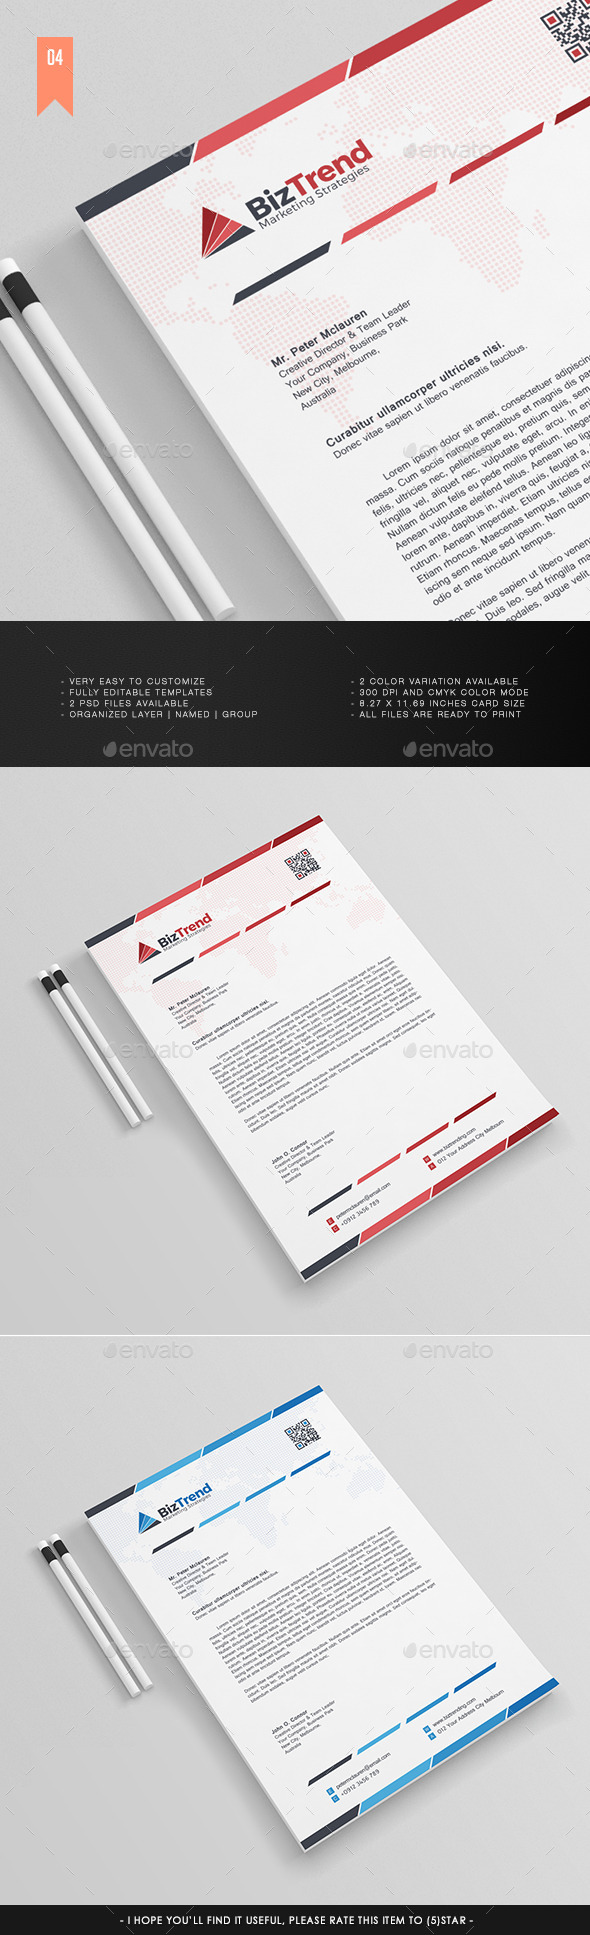 A4 - Business Letterhead V.004 - Stationery Print Templates